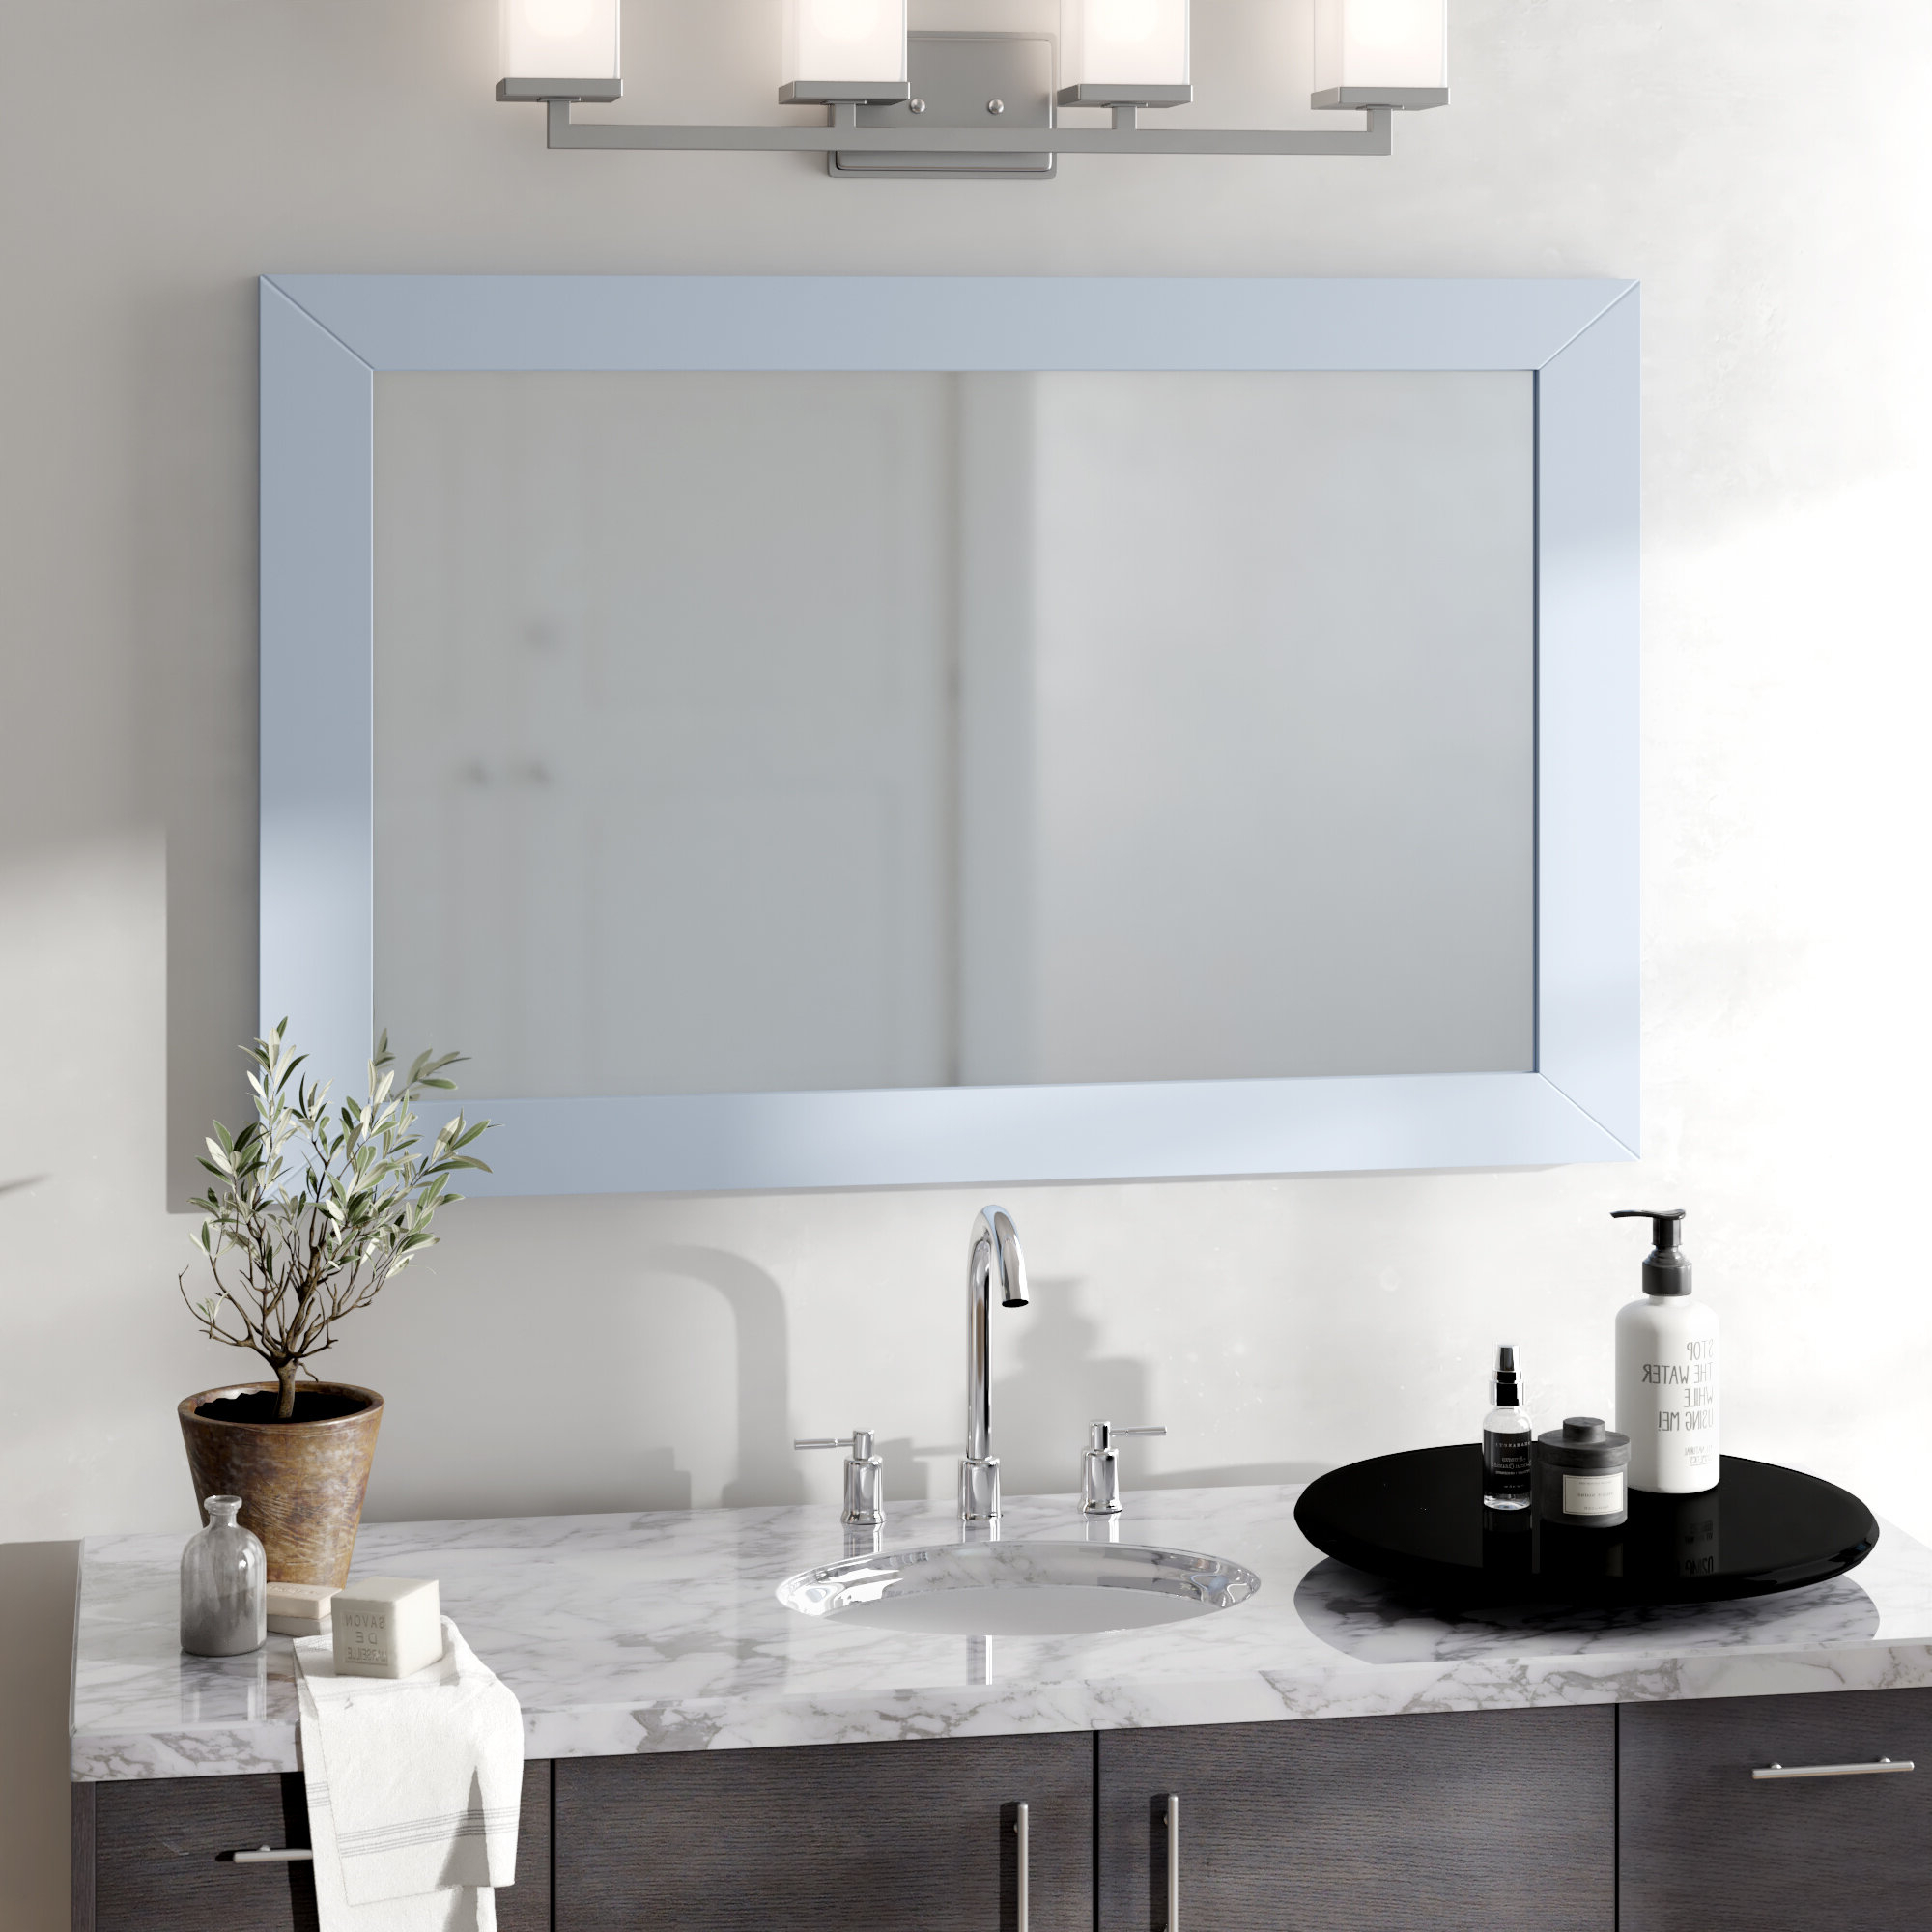 Piccirillo Rectangle Framed Bathroom Wall Mirror Intended For Favorite Frame Bathroom Wall Mirrors (View 16 of 20)